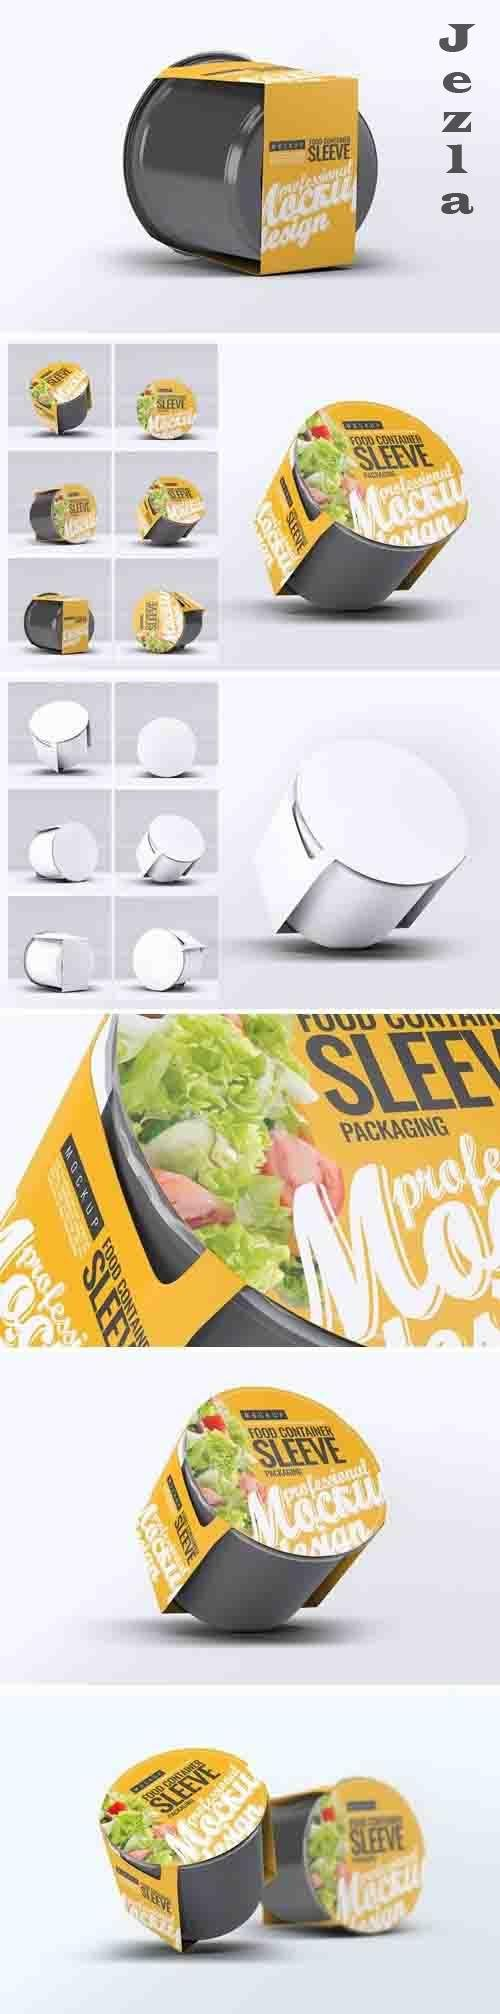 Food Container Sleeve Packaging Mock-Up v.2